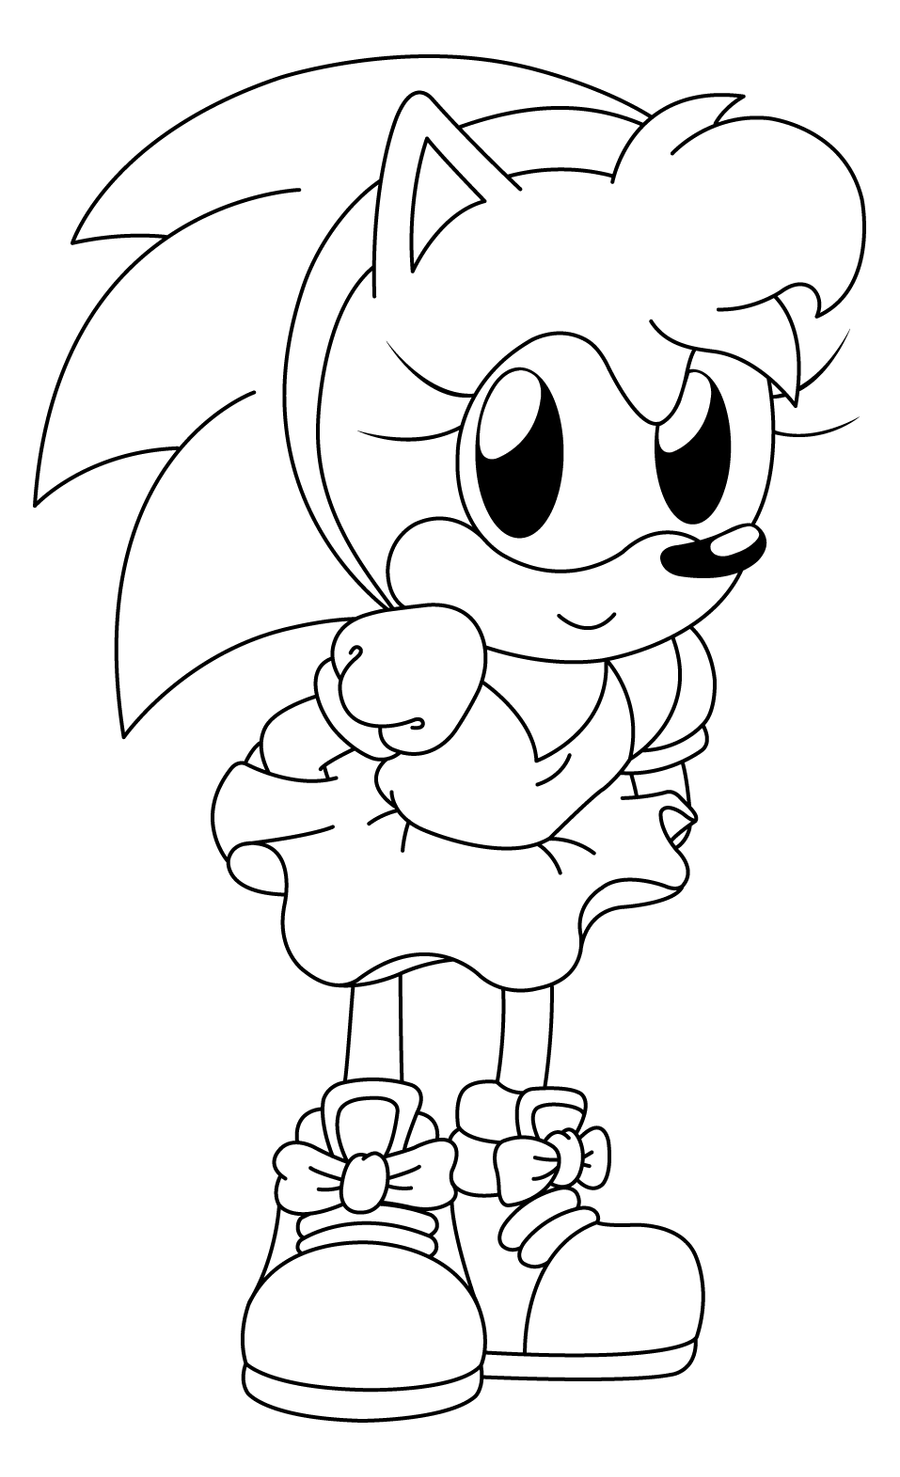 sonic amy swimming coloring pages - photo#1